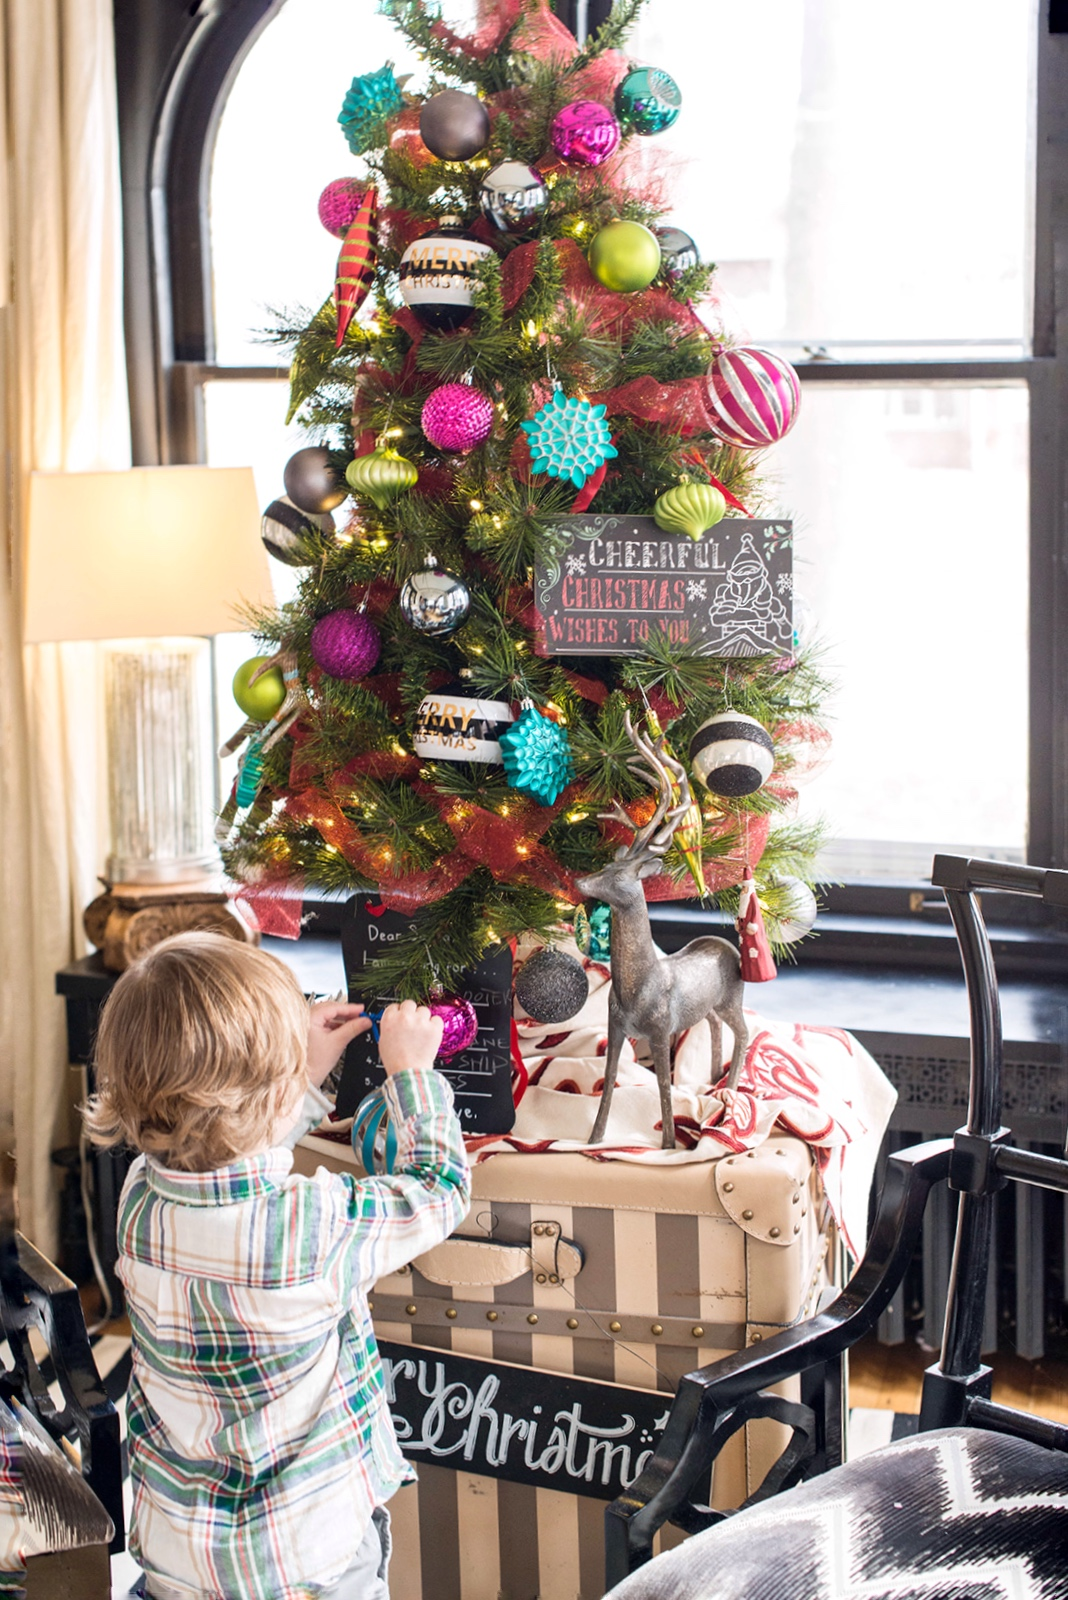 In the dining room I place a smaller, more vibrant tree on display.